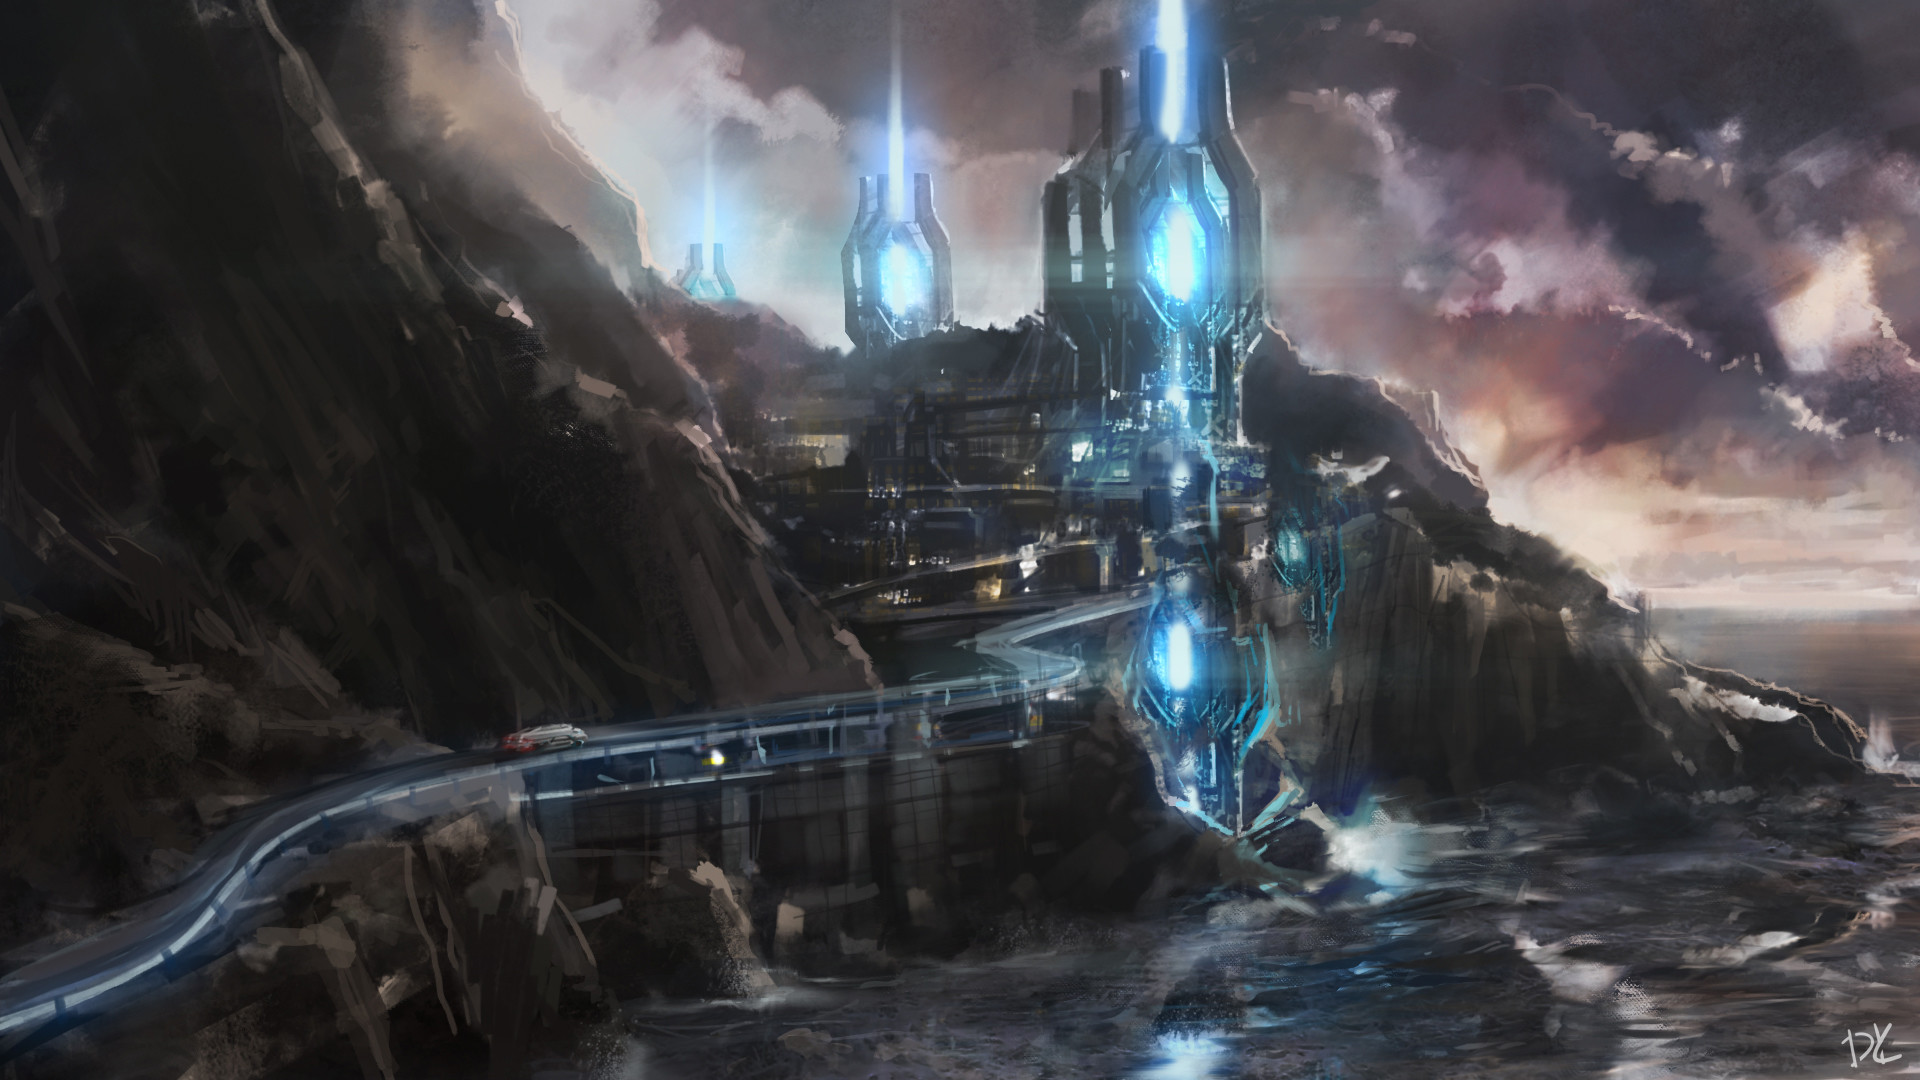 Dmitry kaidash energy sources concept sketch speed painting photoshop cinema4d aae